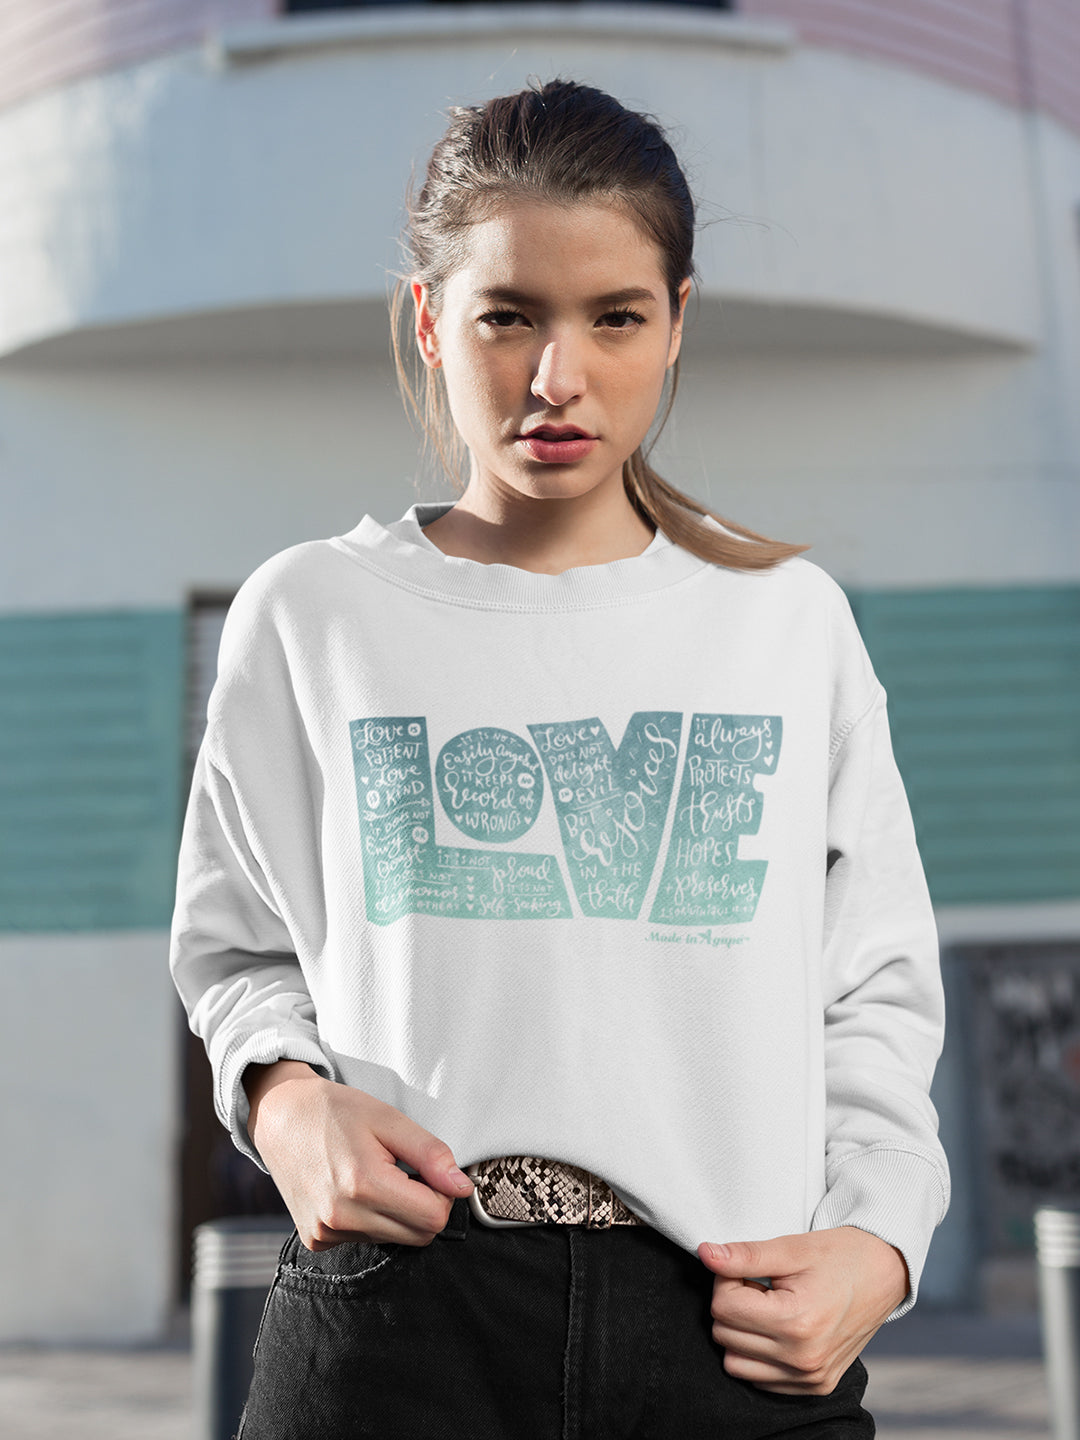 LOVE Protects - Women's Sweatshirt-Made In Agapé